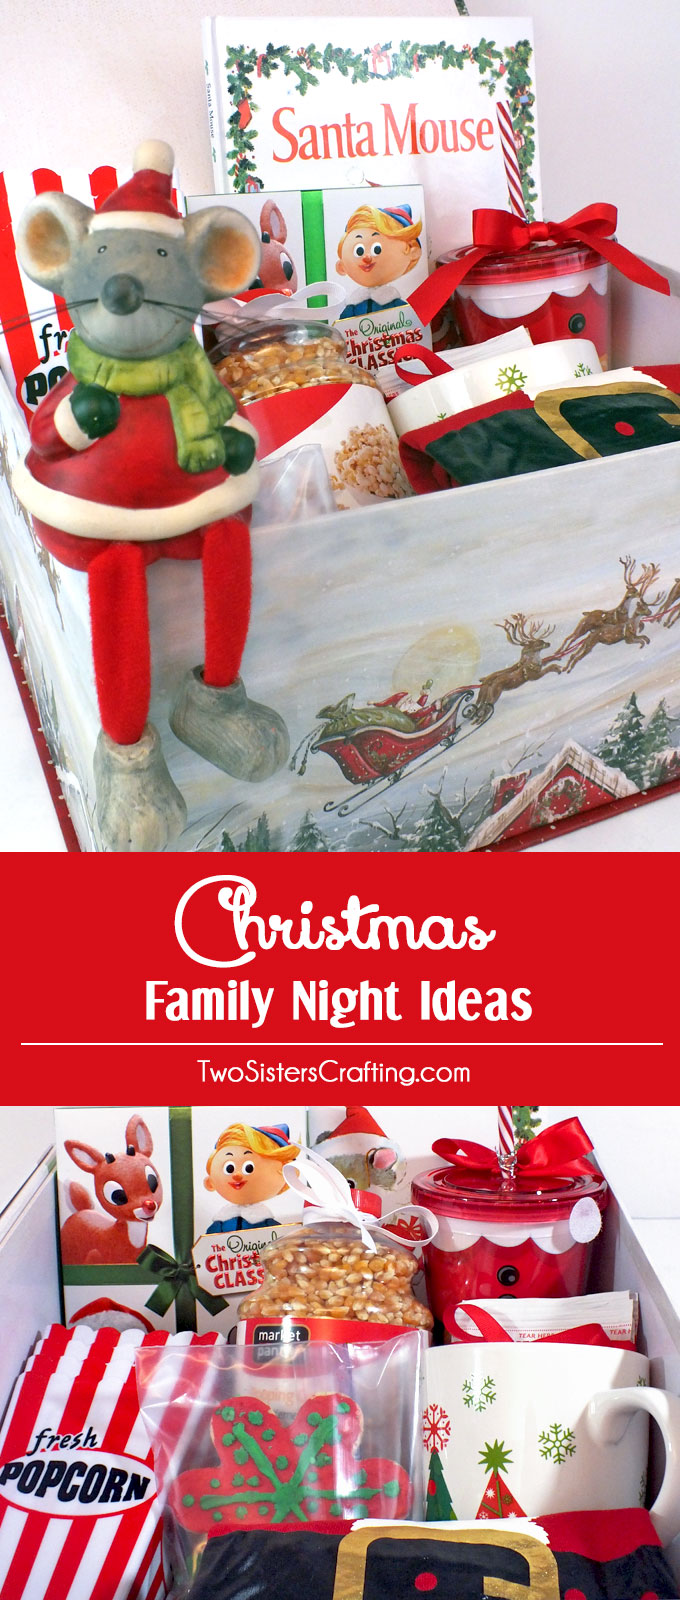 great christmas family photo ideas - Christmas Family Night Ideas Two Sisters Crafting